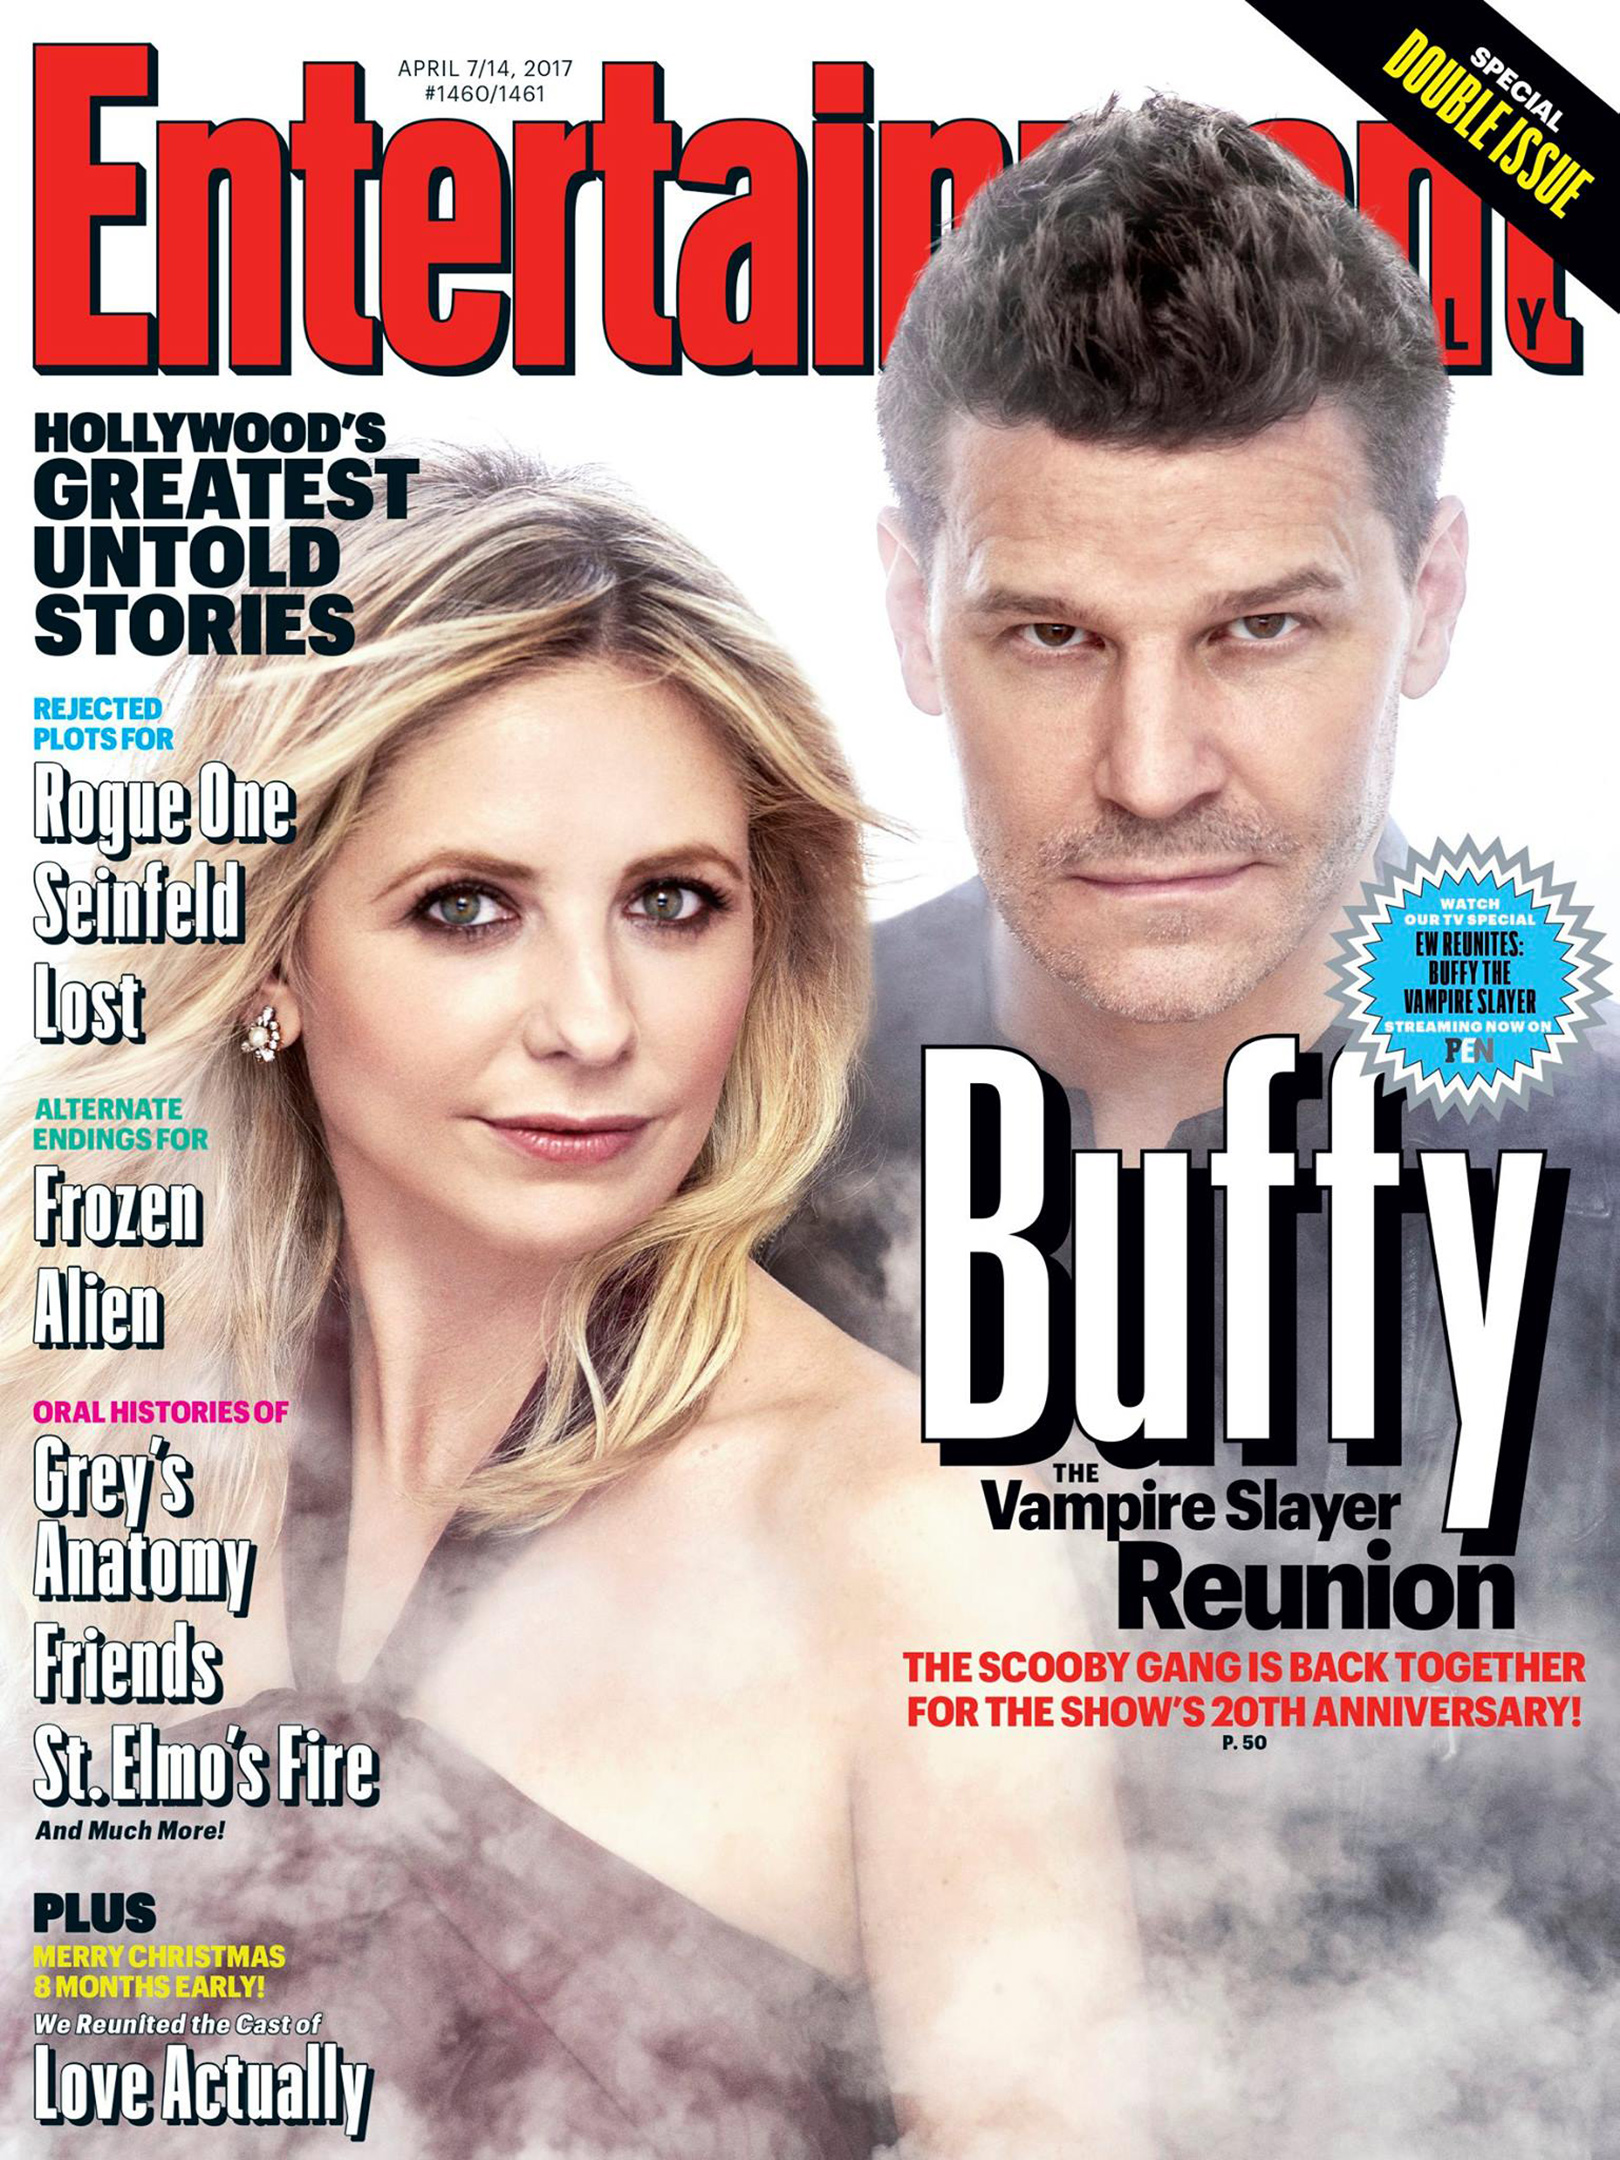 buffy_reunion_entertainment_weekly